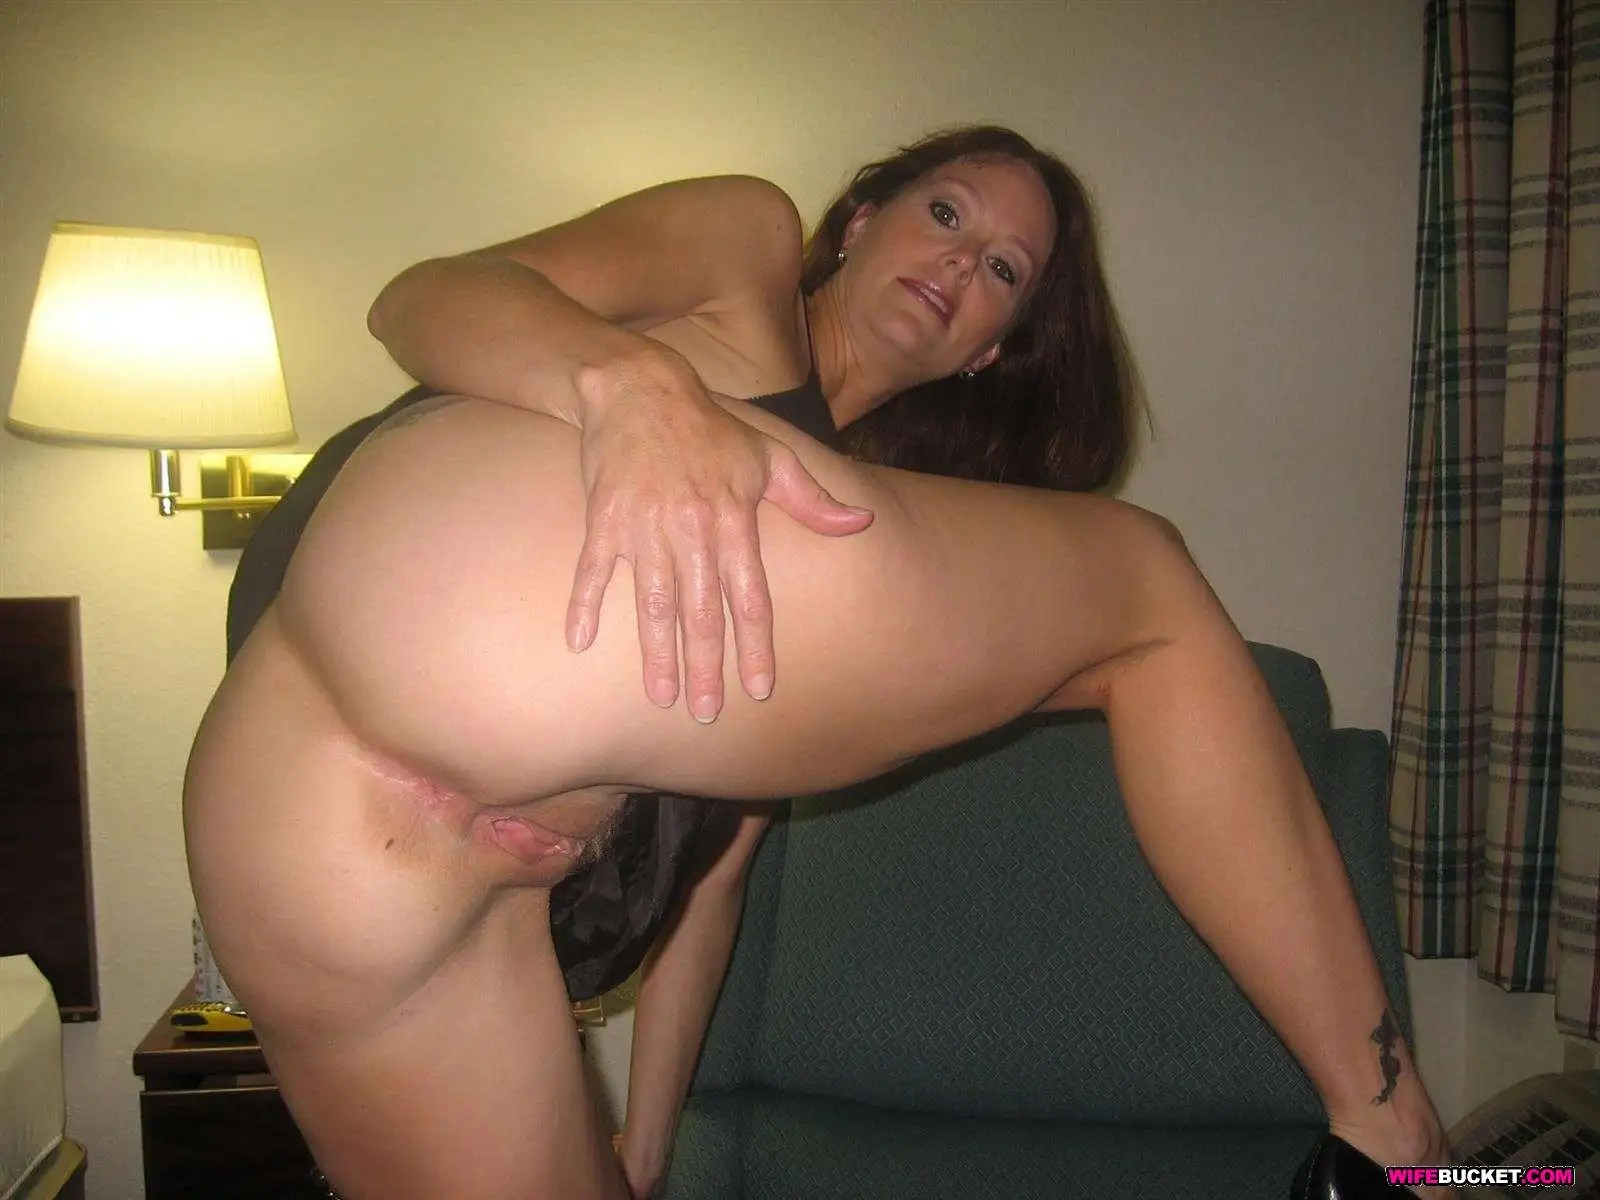 Cam Sex Free Colombia - Search Images - www.hookup35cougar